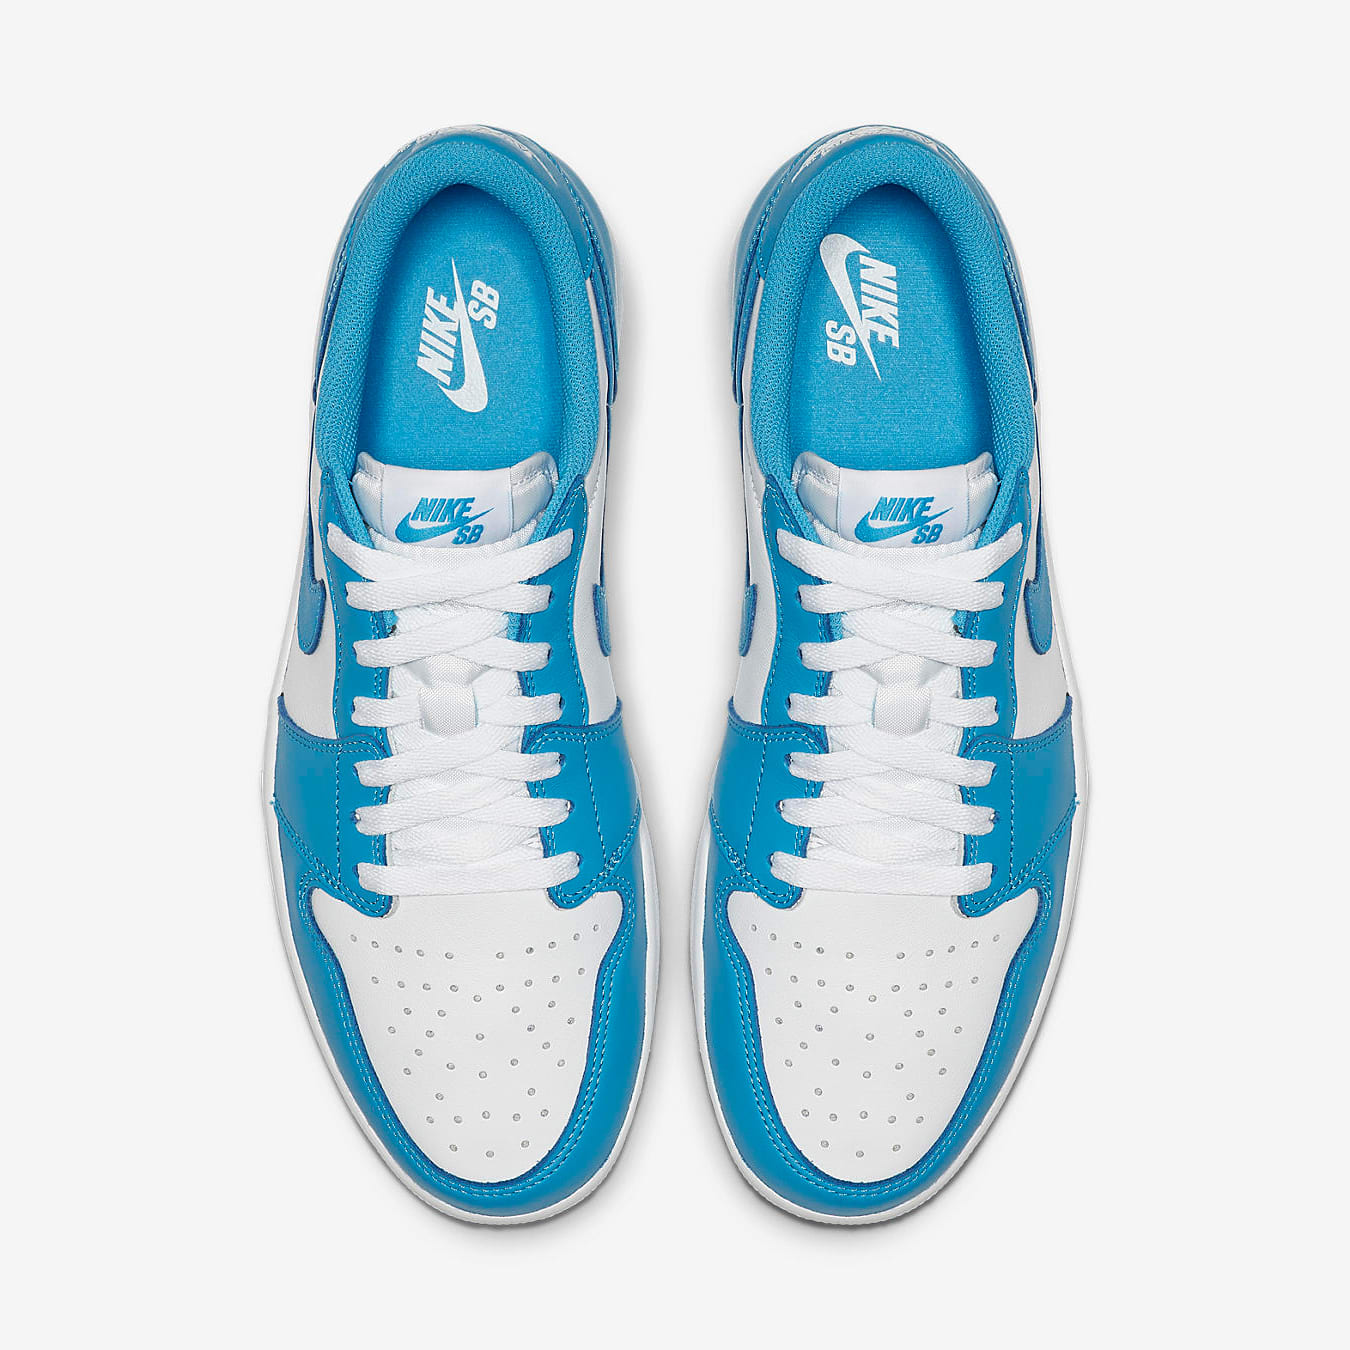 End Features Nike Air Jordan 1 Sb Low Unc Register Now On